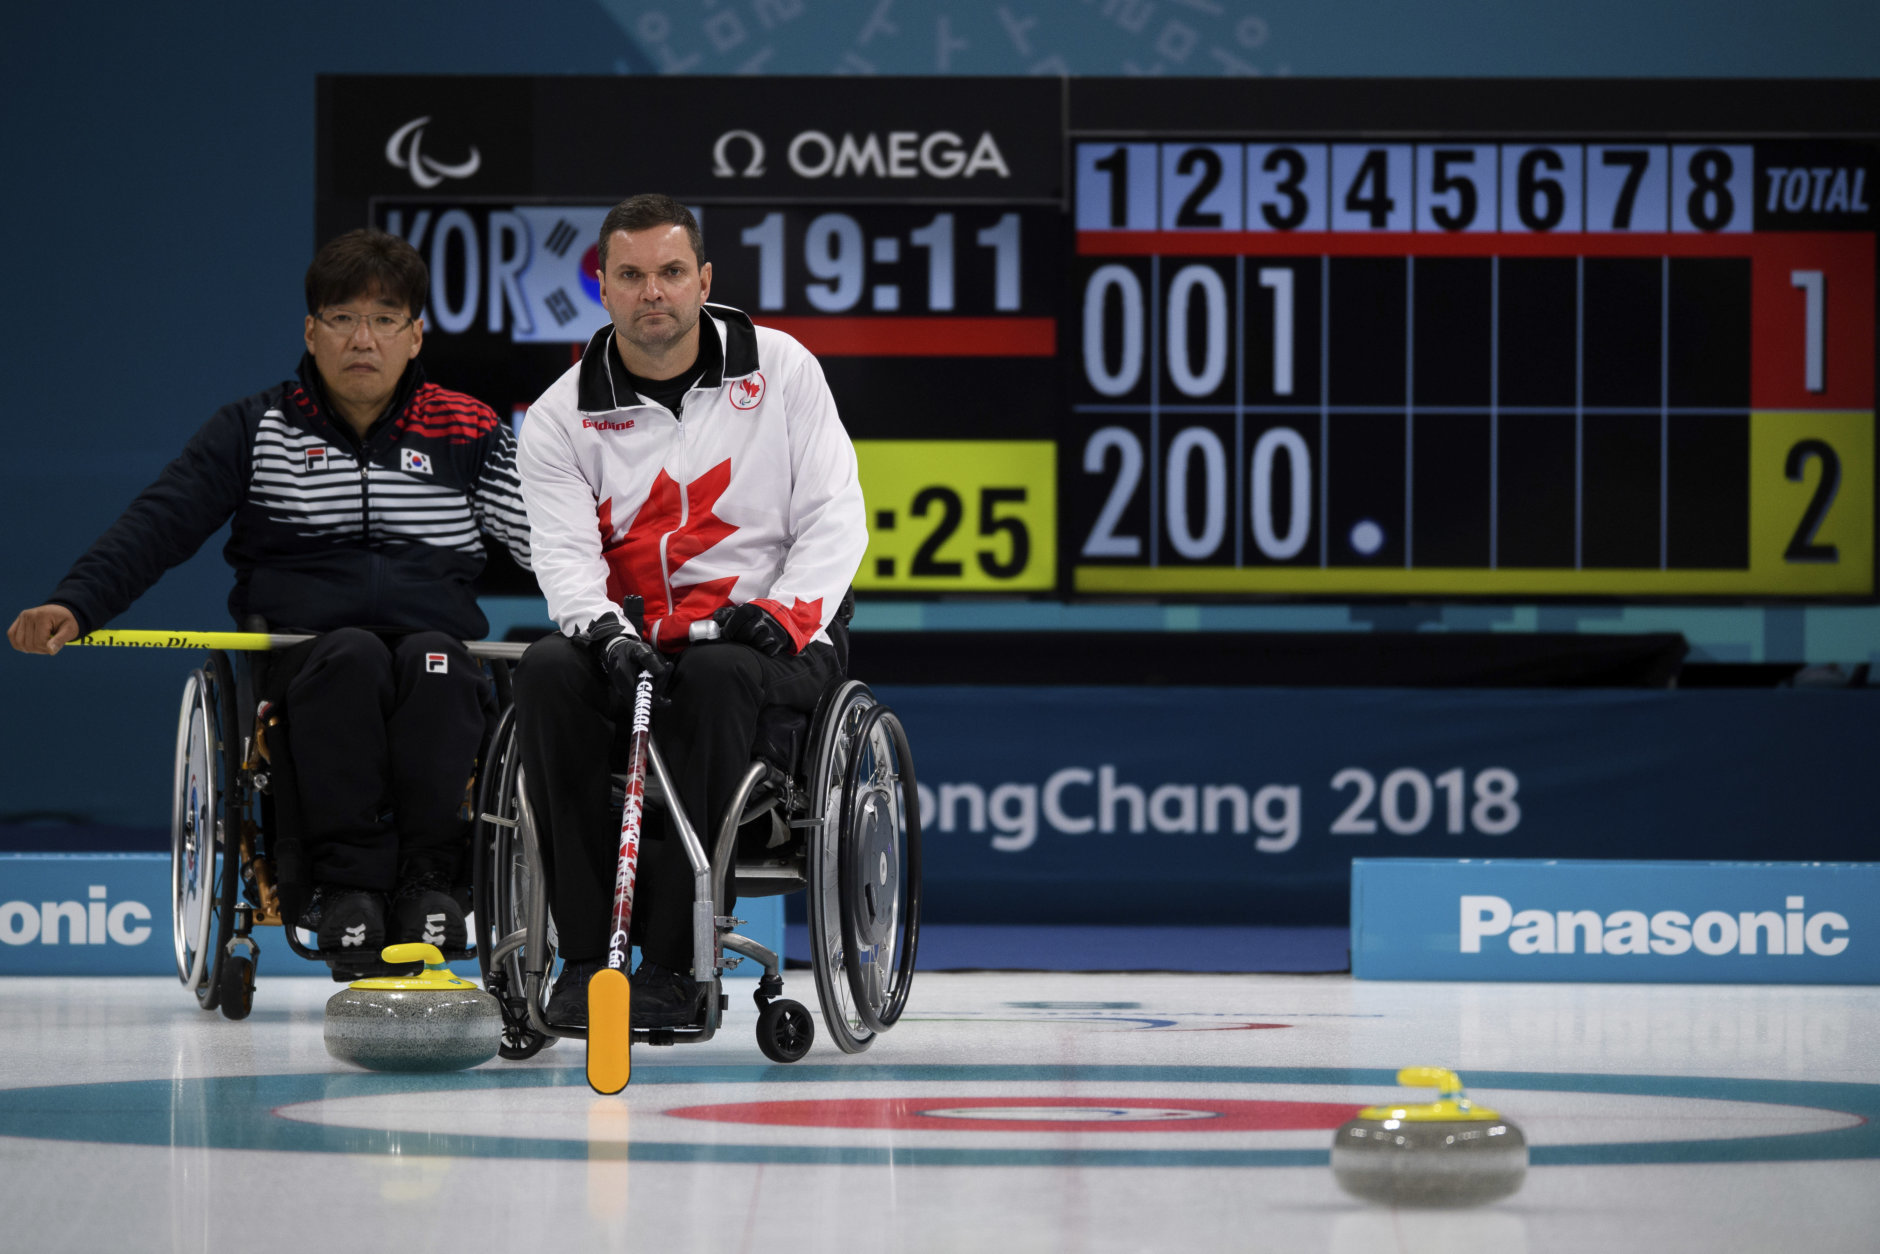 Soonseok Seo, left, of South Korea and Mark Ideson of Canada in action during the Wheelchair Curling Bronze Medal Game between South Korea and Canada at the Gangneung Curling Centre in Gangneung, South Korea at the 2018 Winter Paralympics Saturday, March 17, 2018. (Joel Marklund/OIS/IOC via AP)